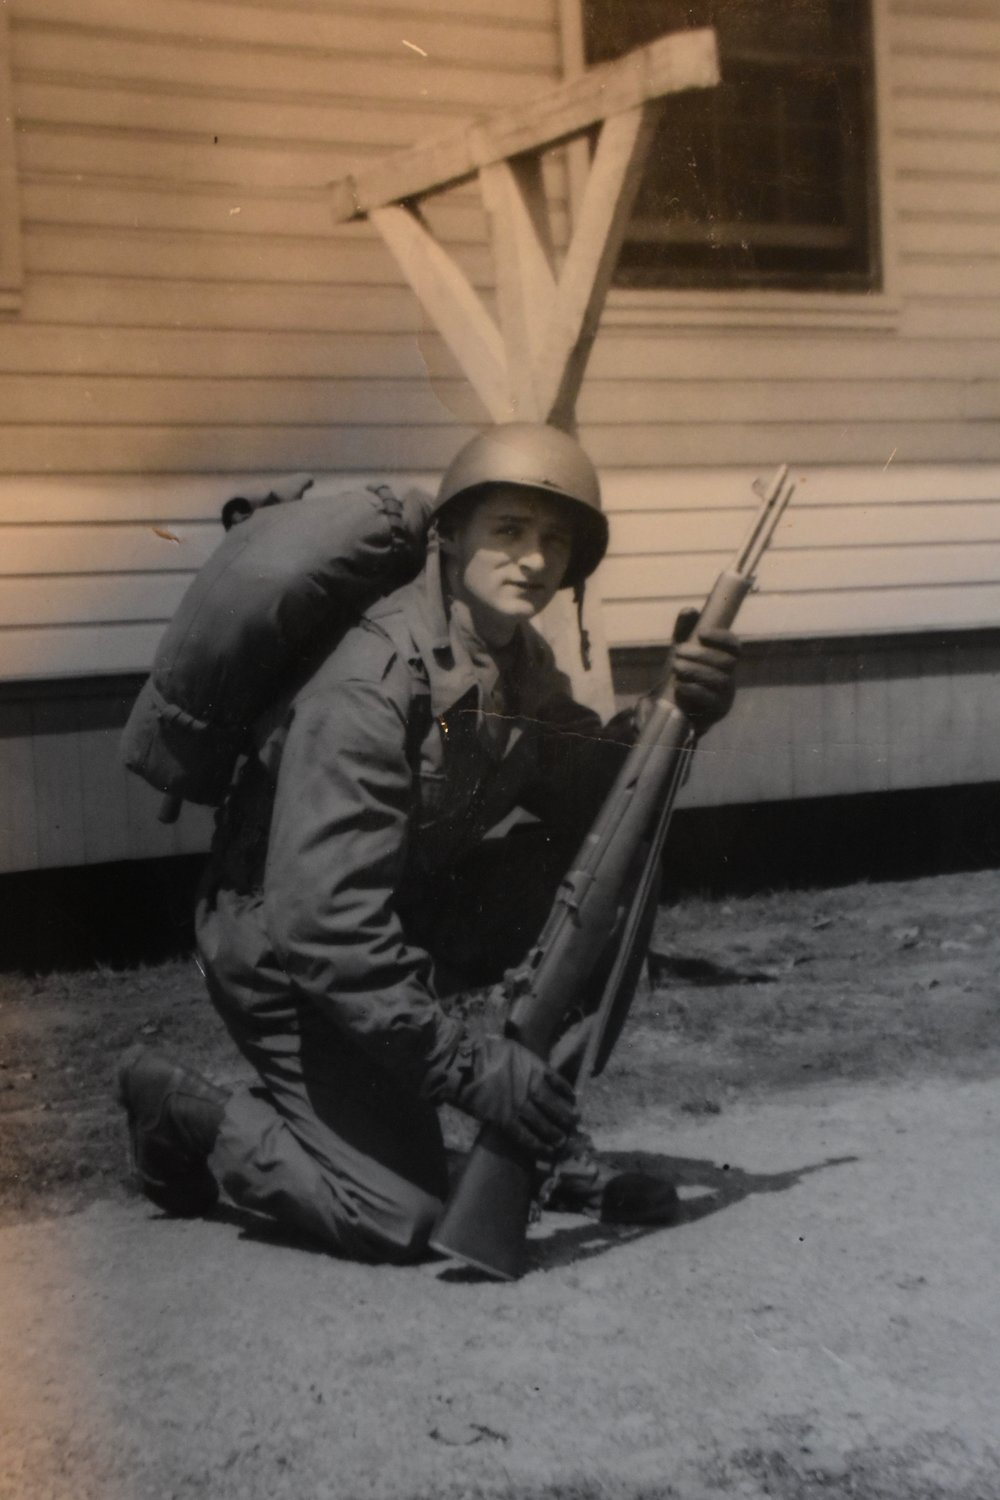 Fallon, who has lived in Rockville Centre for 50 years, did basic training at Fort Leonard Wood in Missouri in 1952.